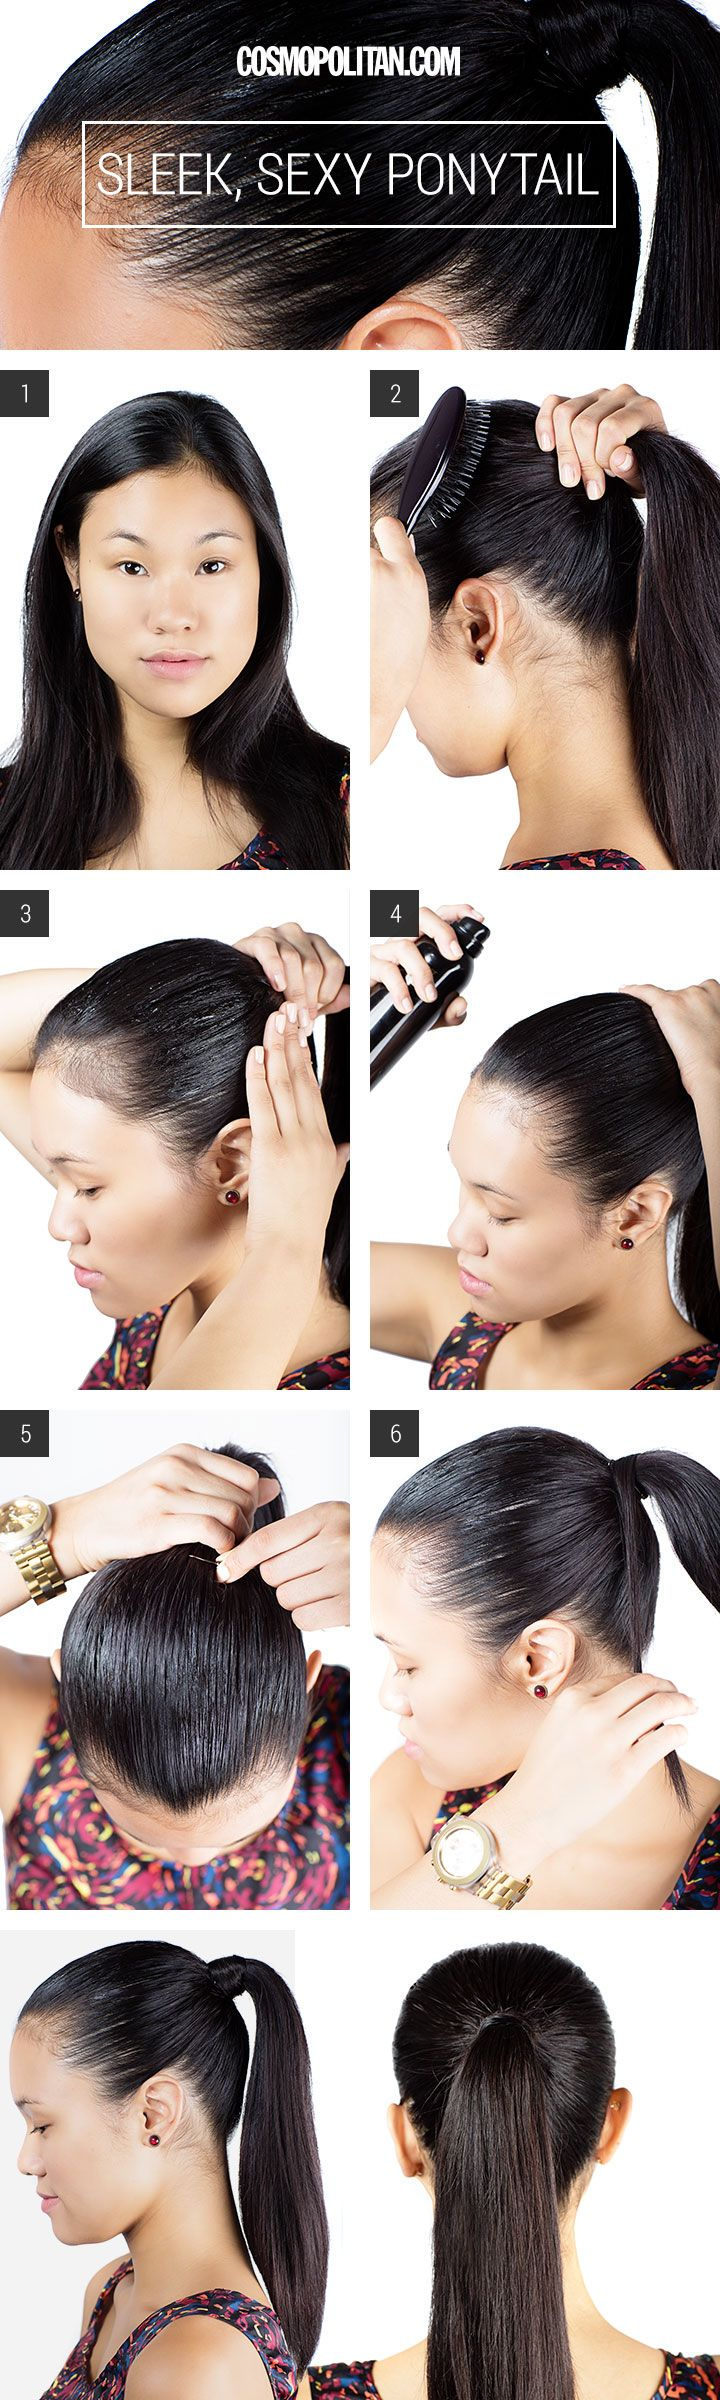 Hair How To Slicked Back Ponytail - How To Create A Sleek Ponytail - Cosmopolitan